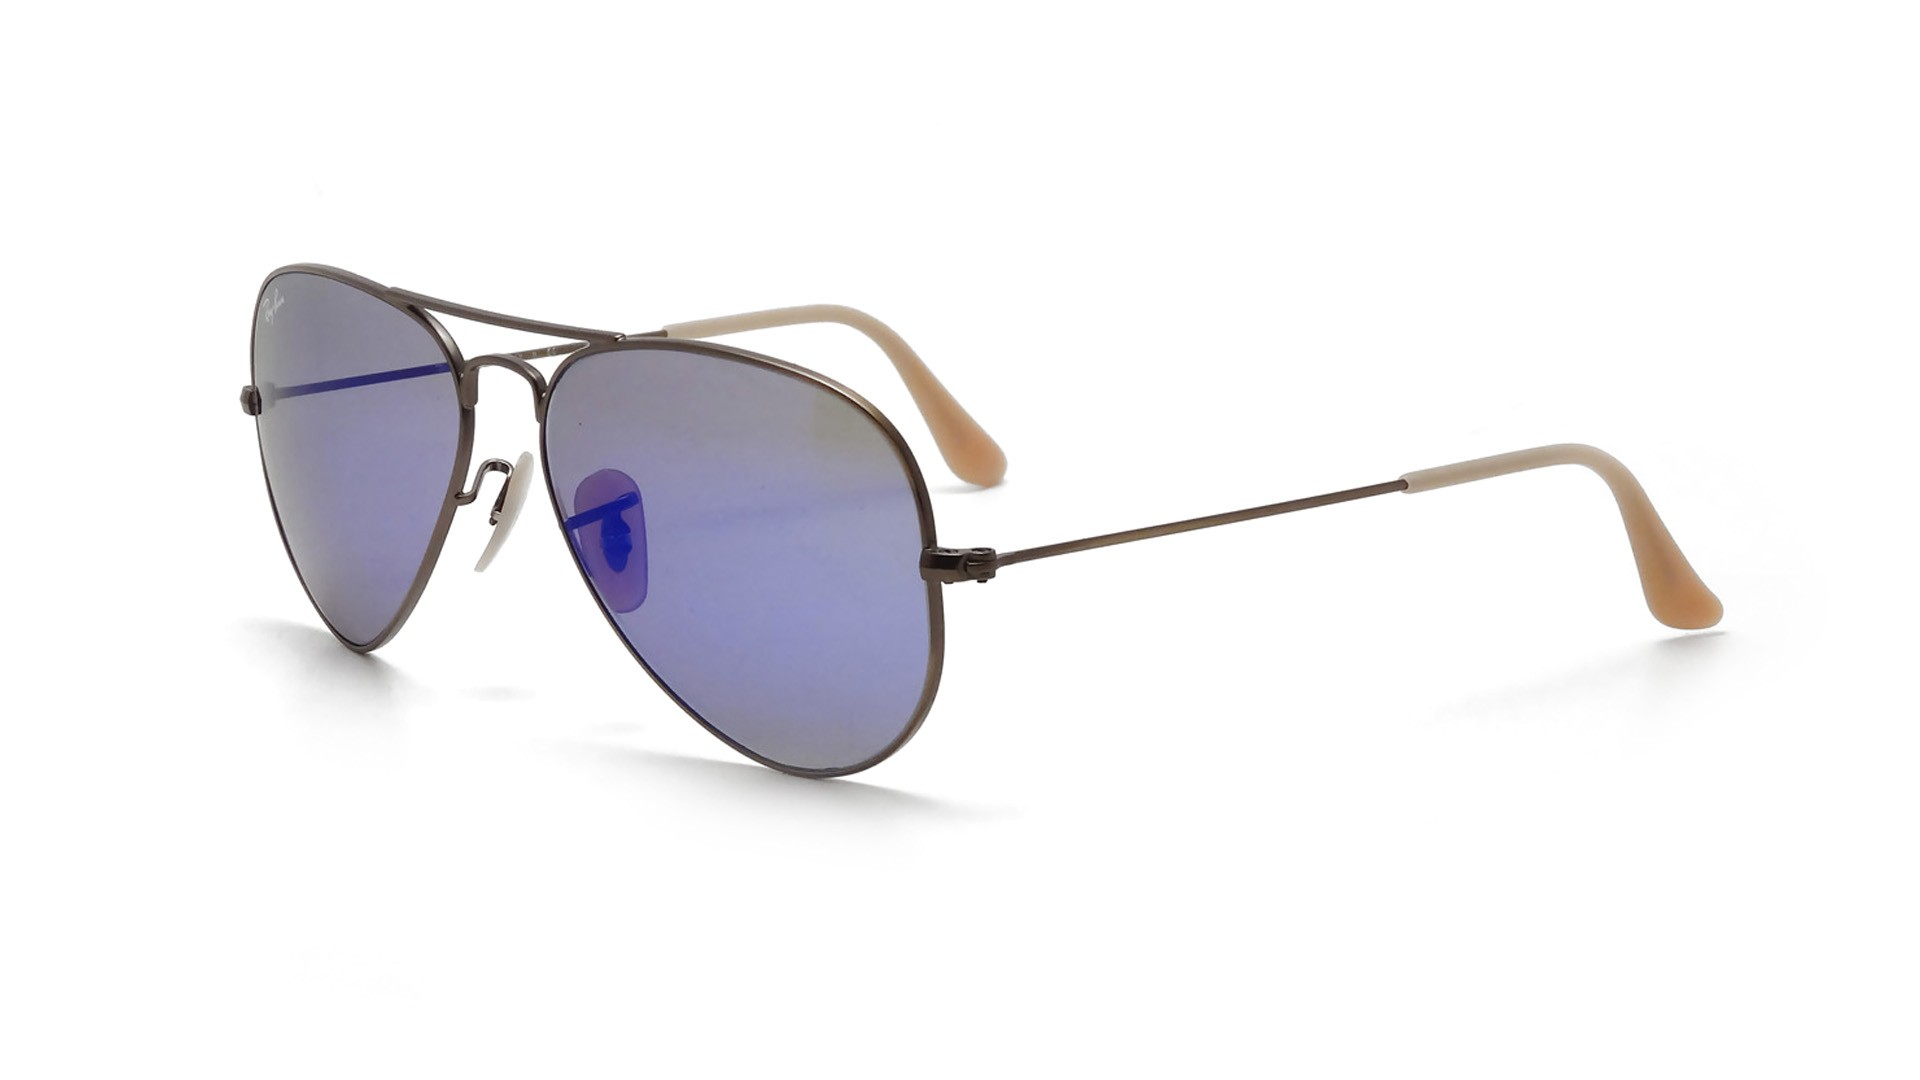 mirrored aviator sunglasses ray ban w45r  Ray-Ban Aviator Large Metal Beige RB3025 167/68 55-14  Visiofactory